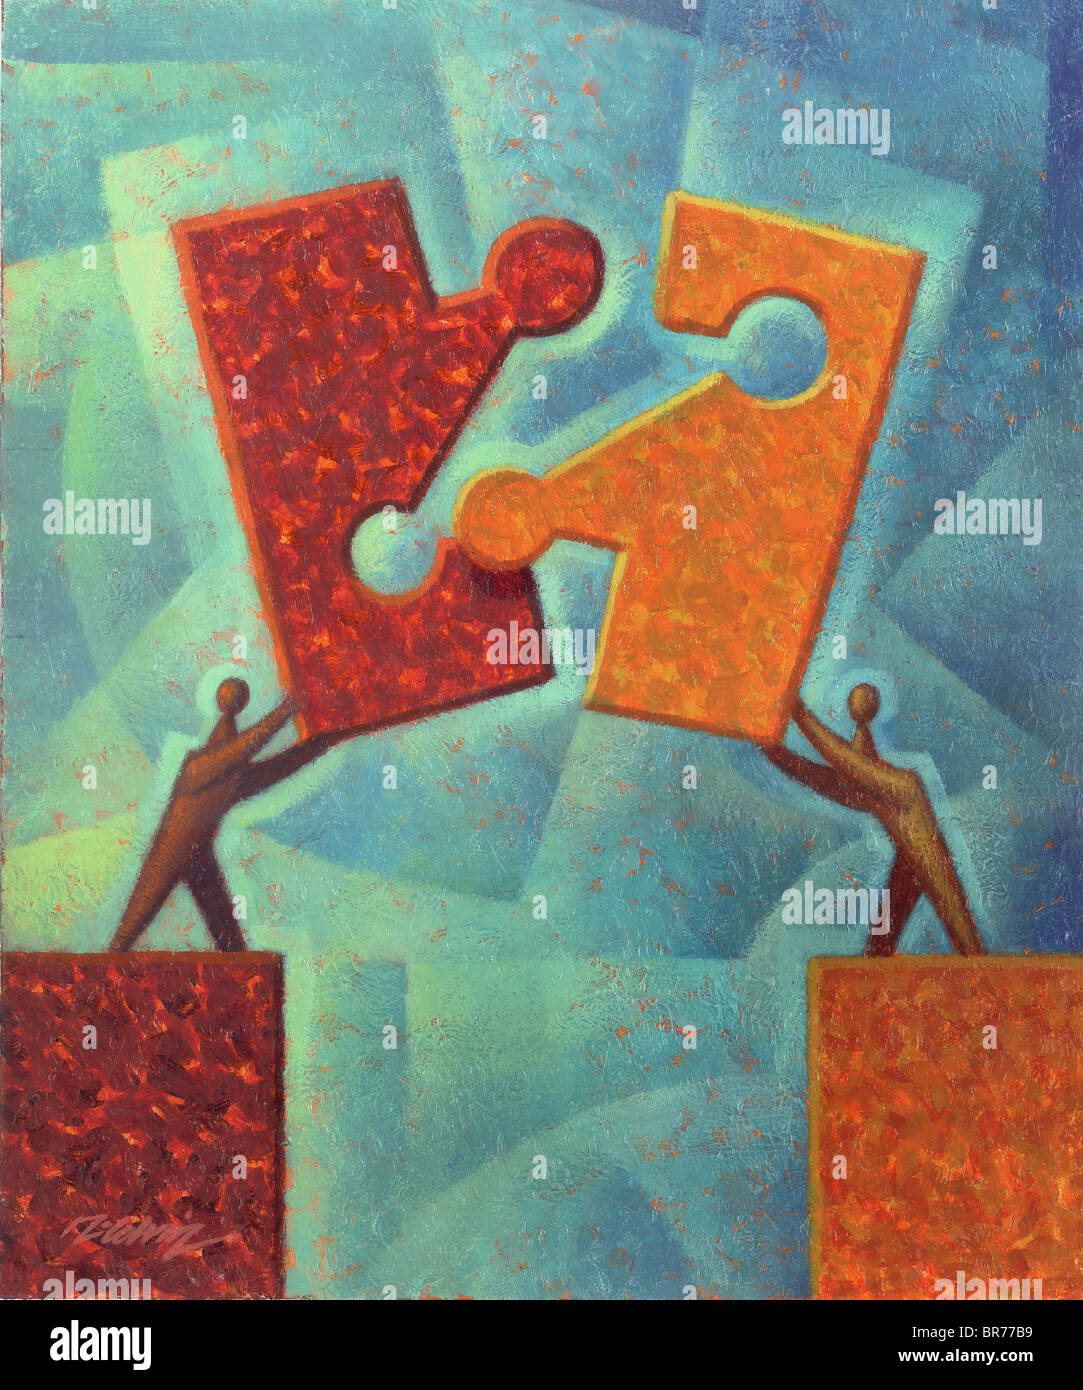 piecing the puzzle together - Stock Image